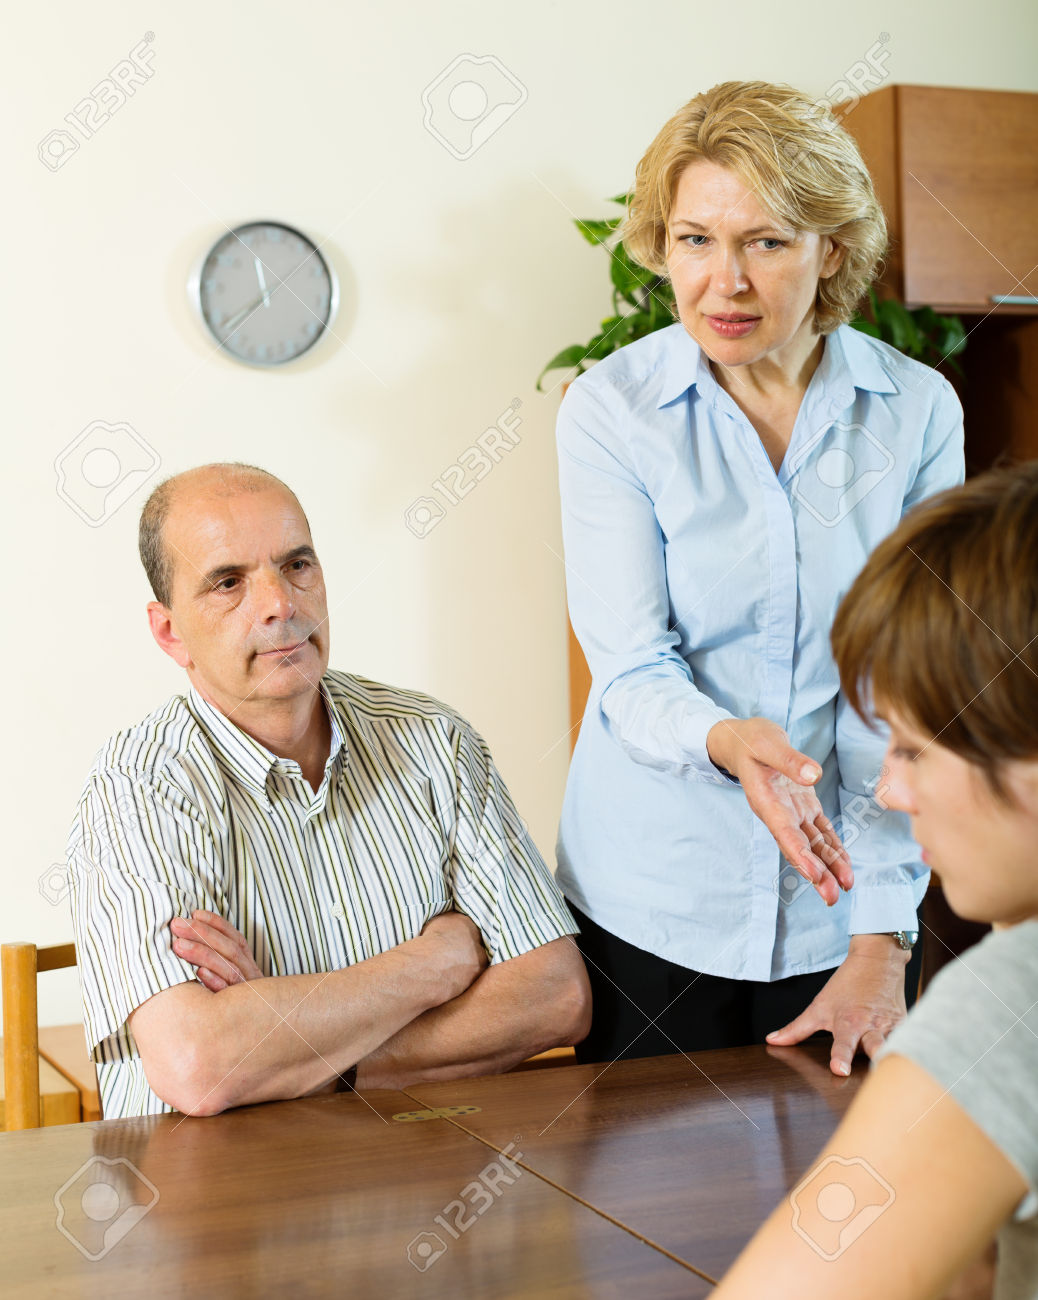 50872864-daughter-and-mature-parents-having-serious-talking-in-home-interior-Stock-Photo.jpg